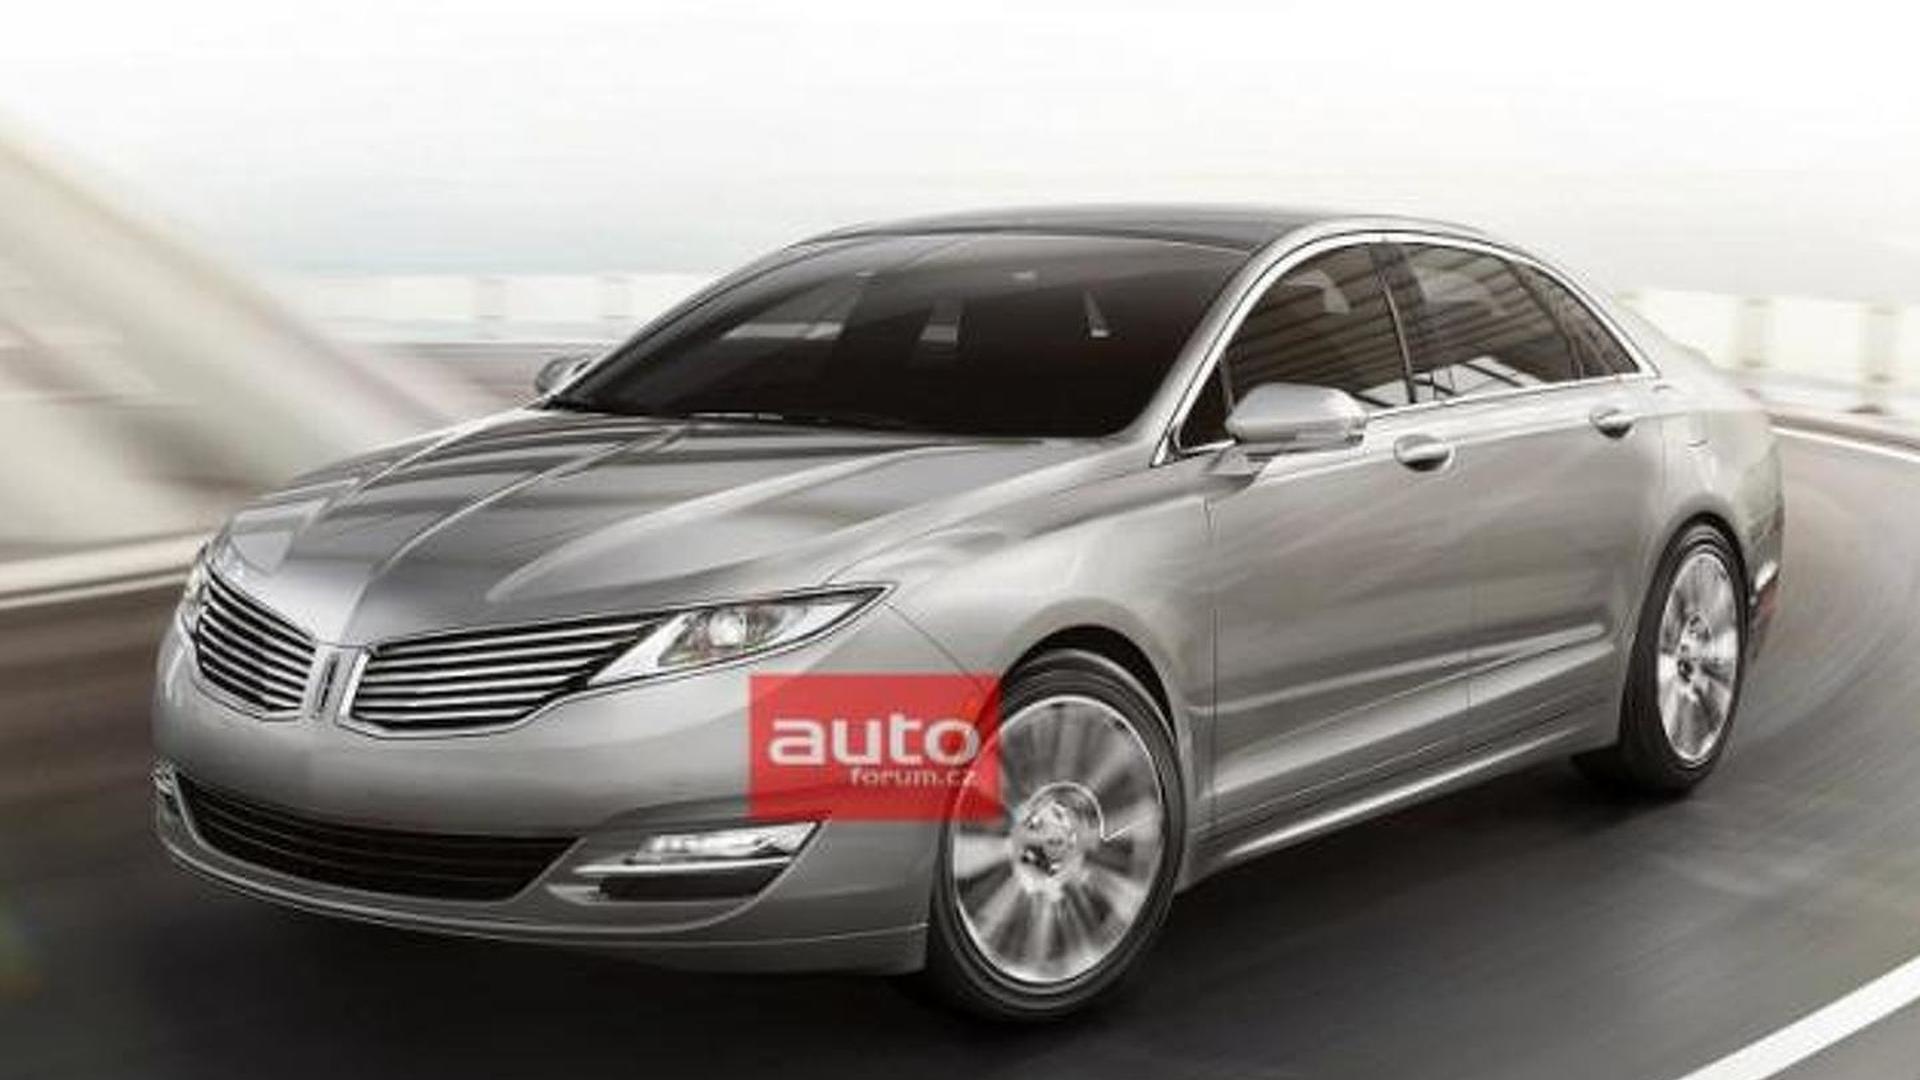 2013 Lincoln MKZ leaked [video]